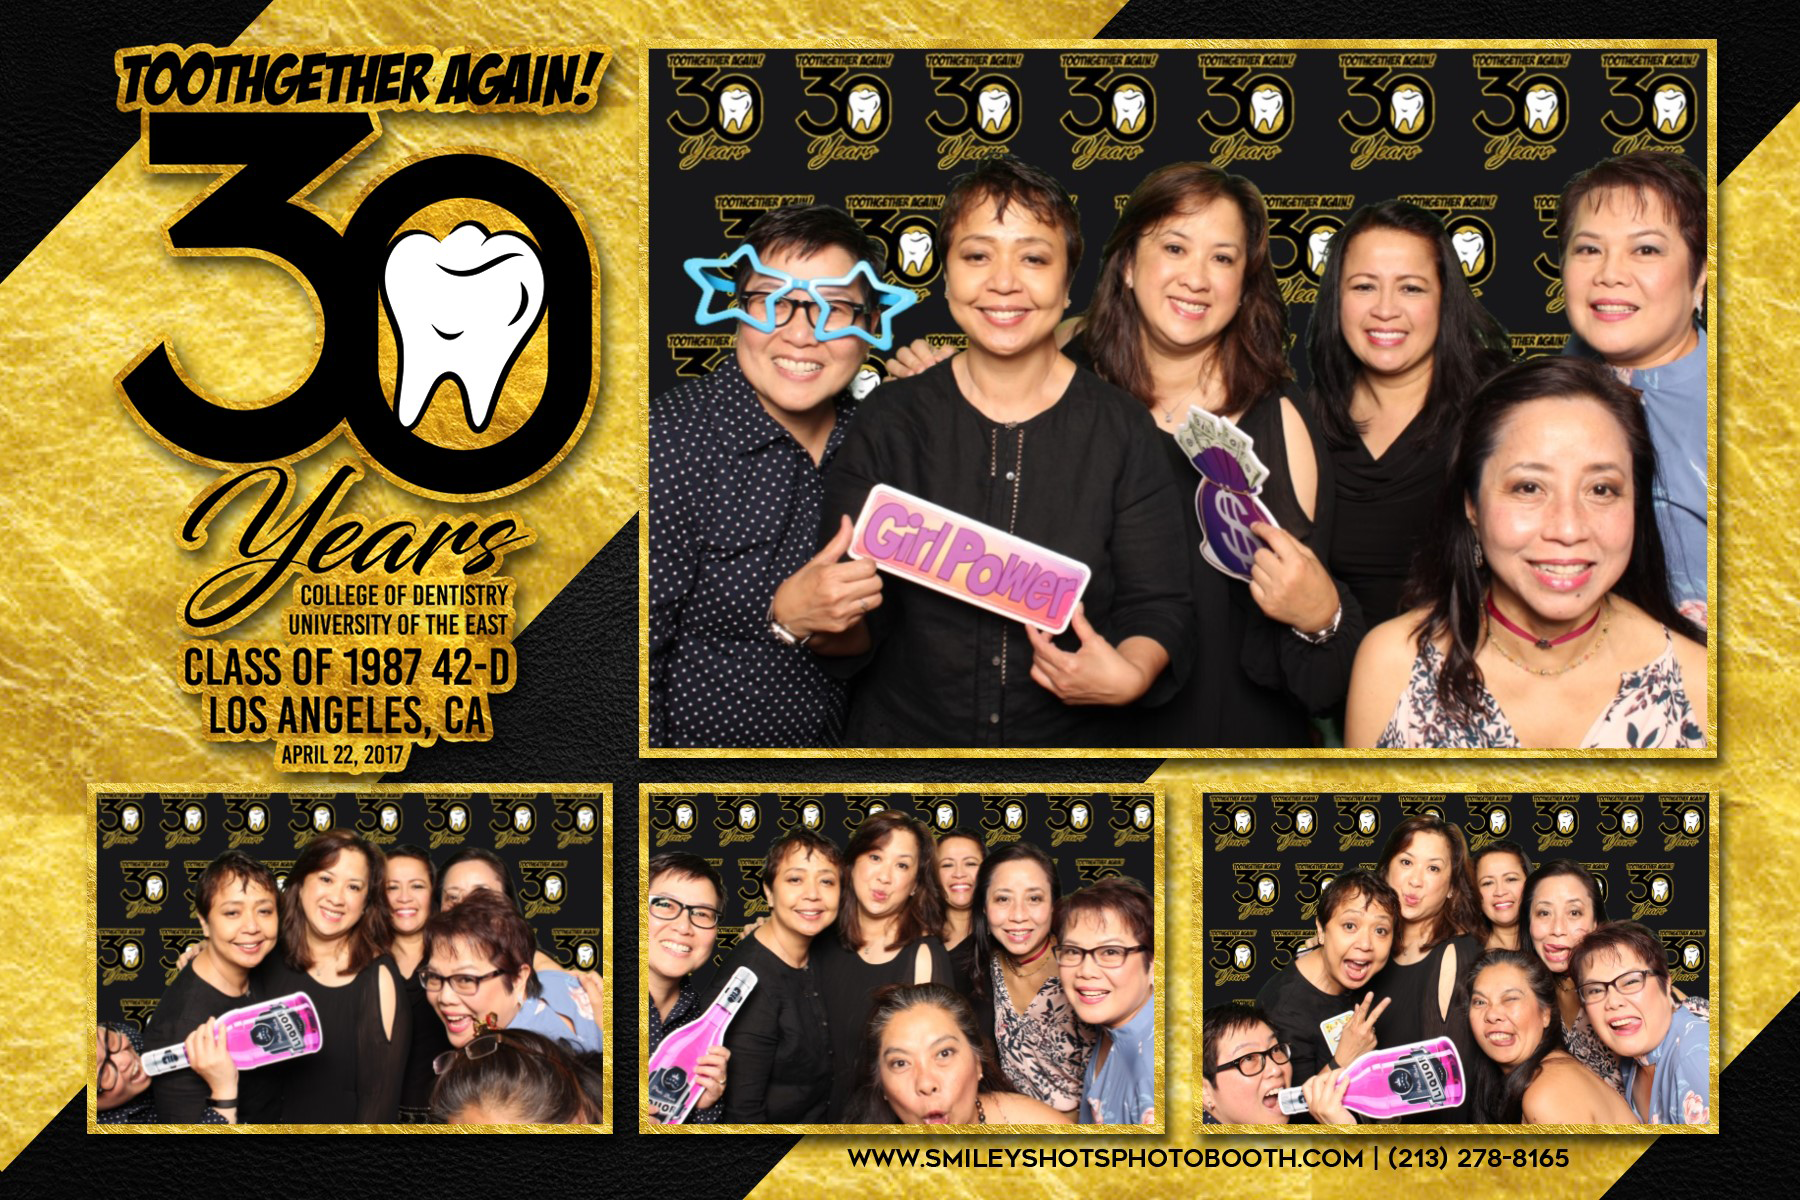 30th Years Dental UE Smiley Shots Photo Booth Photobooth (1).png